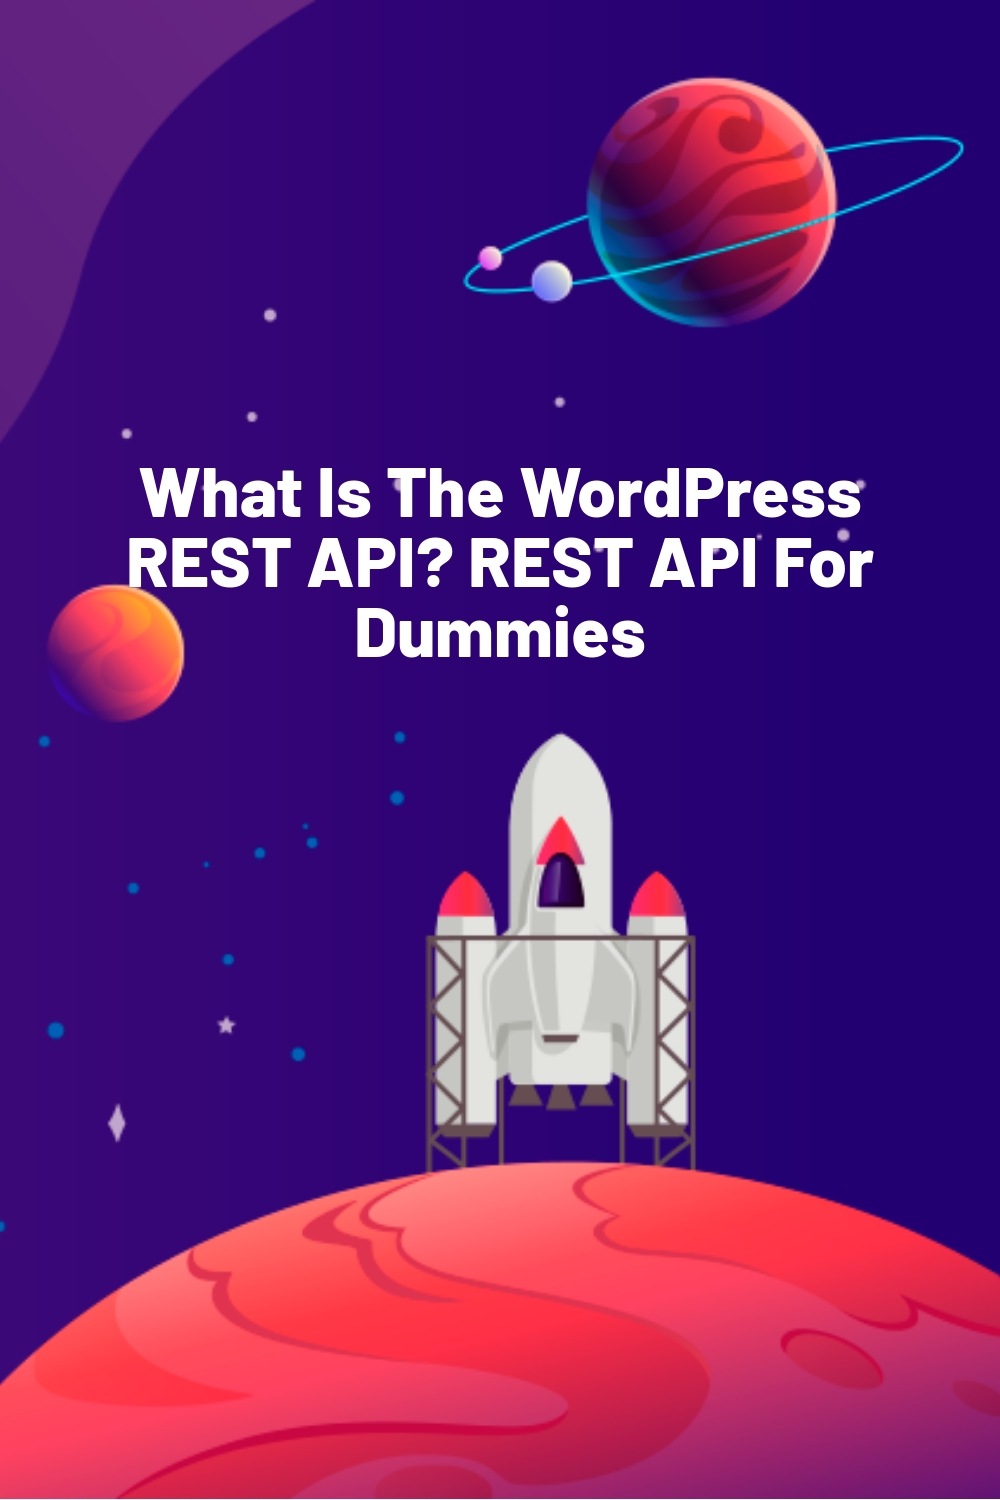 What Is The WordPress REST API? REST API For Dummies